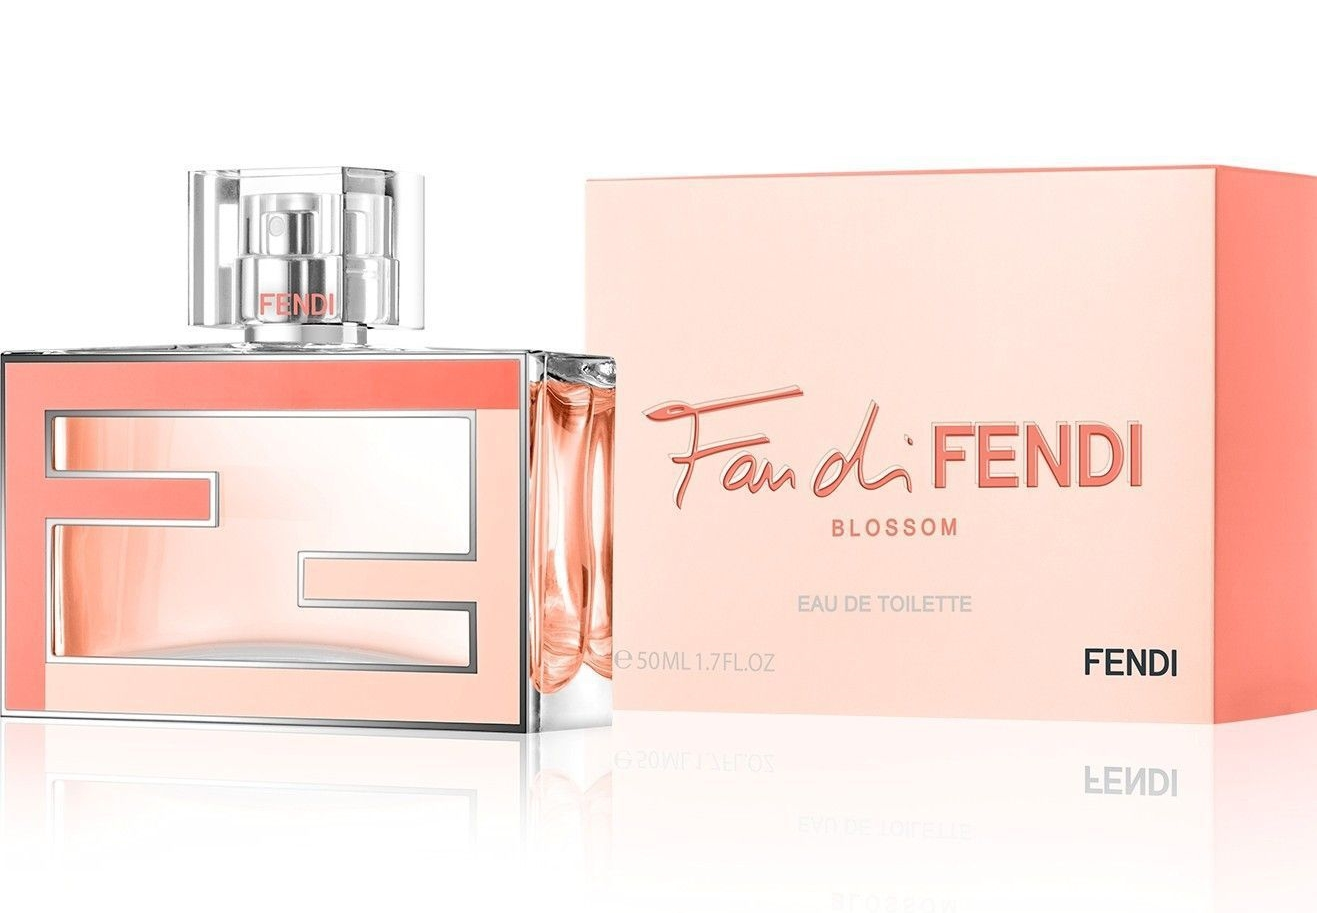 Fendi Fan di Fendi Blossom Flacon